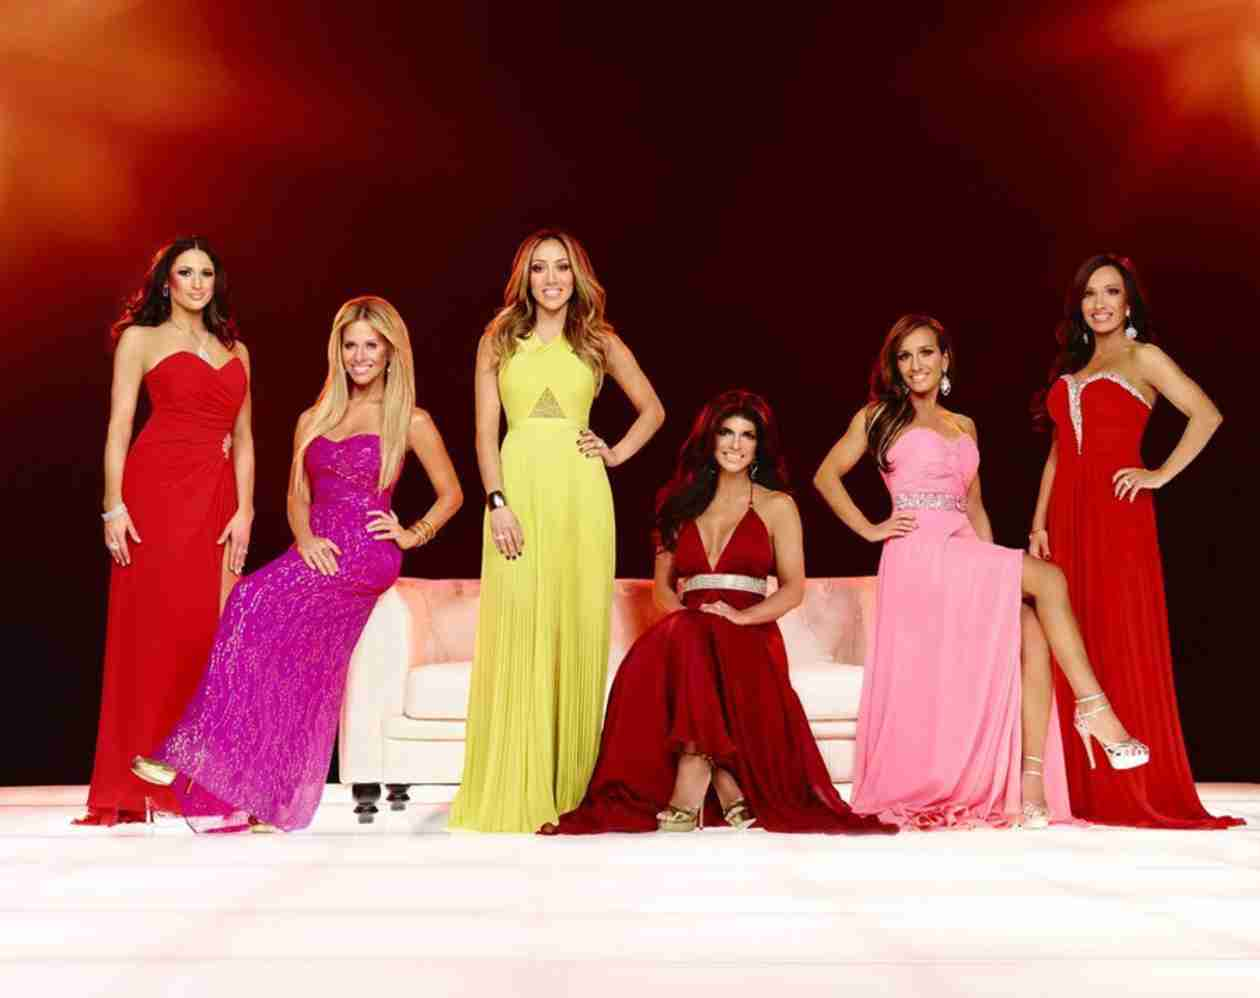 5 Things to Know About Real Housewives of New Jersey Season 6